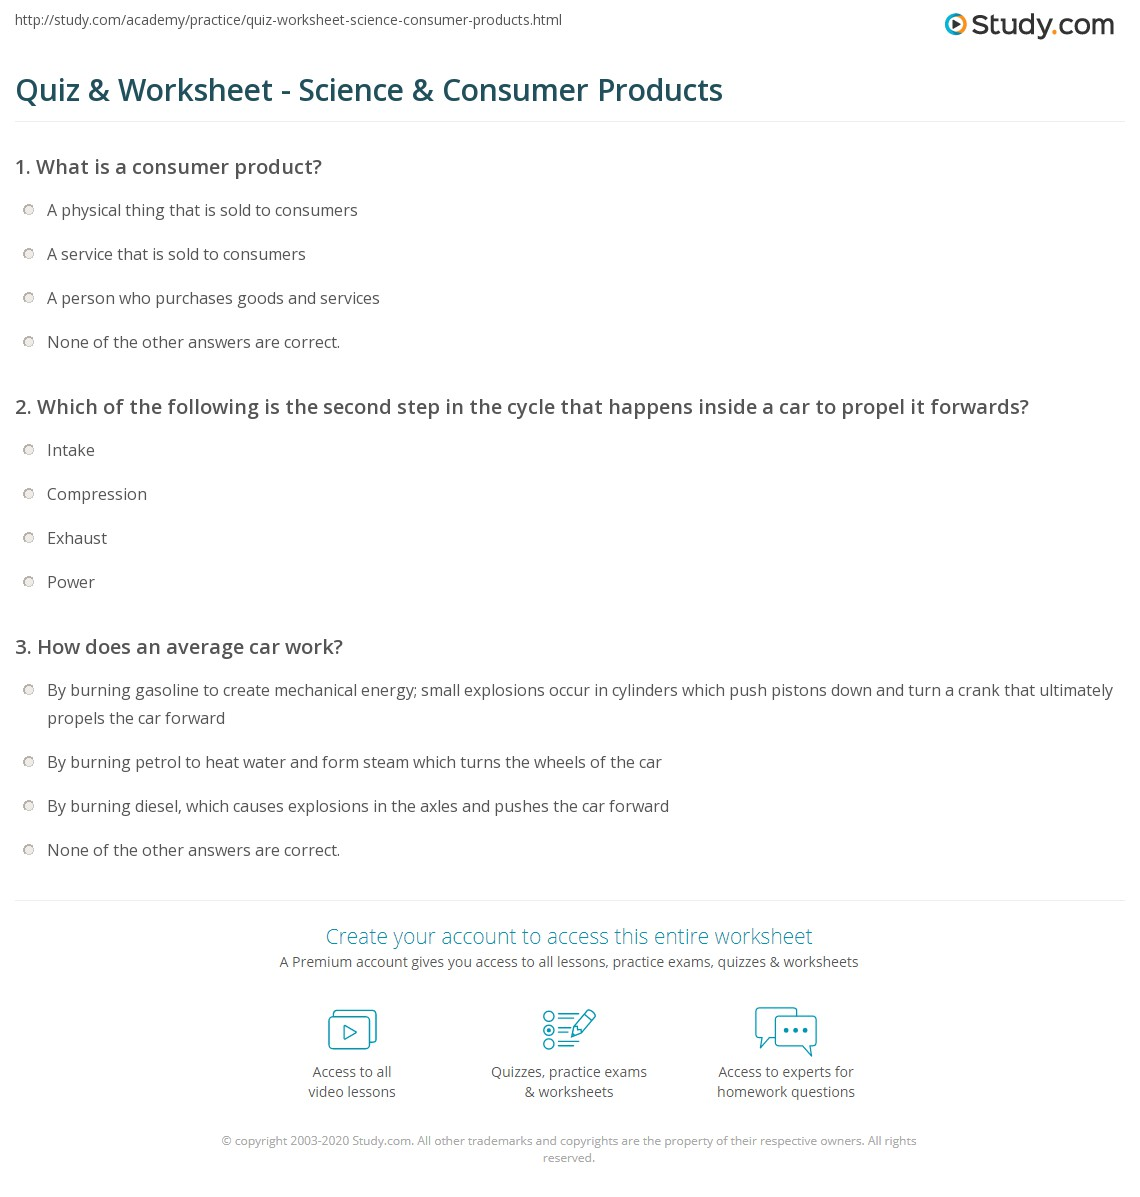 physical science work worksheet fresh physical science work also 33 Work Power and Energy Worksheet Graphics   Gulftravelupdate as well  also Energy Word Search   Home  Science   Pinterest   Science as well  furthermore Density Worksheet Physical Science Answers The best worksheets image further  also Matter and Energy Facts  Worksheets   Information For Kids moreover  as well Math In Science Physical Science Work And Power Worksheet   wiring besides Mcdonald Publishing  pany Worksheet Answers Key Luxury Engineering furthermore Free Worksheets Liry   Download and Print Worksheets   Free on also  besides Quiz   Worksheet   Science   Consumer Products   Study together with What Is Physical Science Worksheet Valid Physical Science Worksheets further . on work worksheet physical science